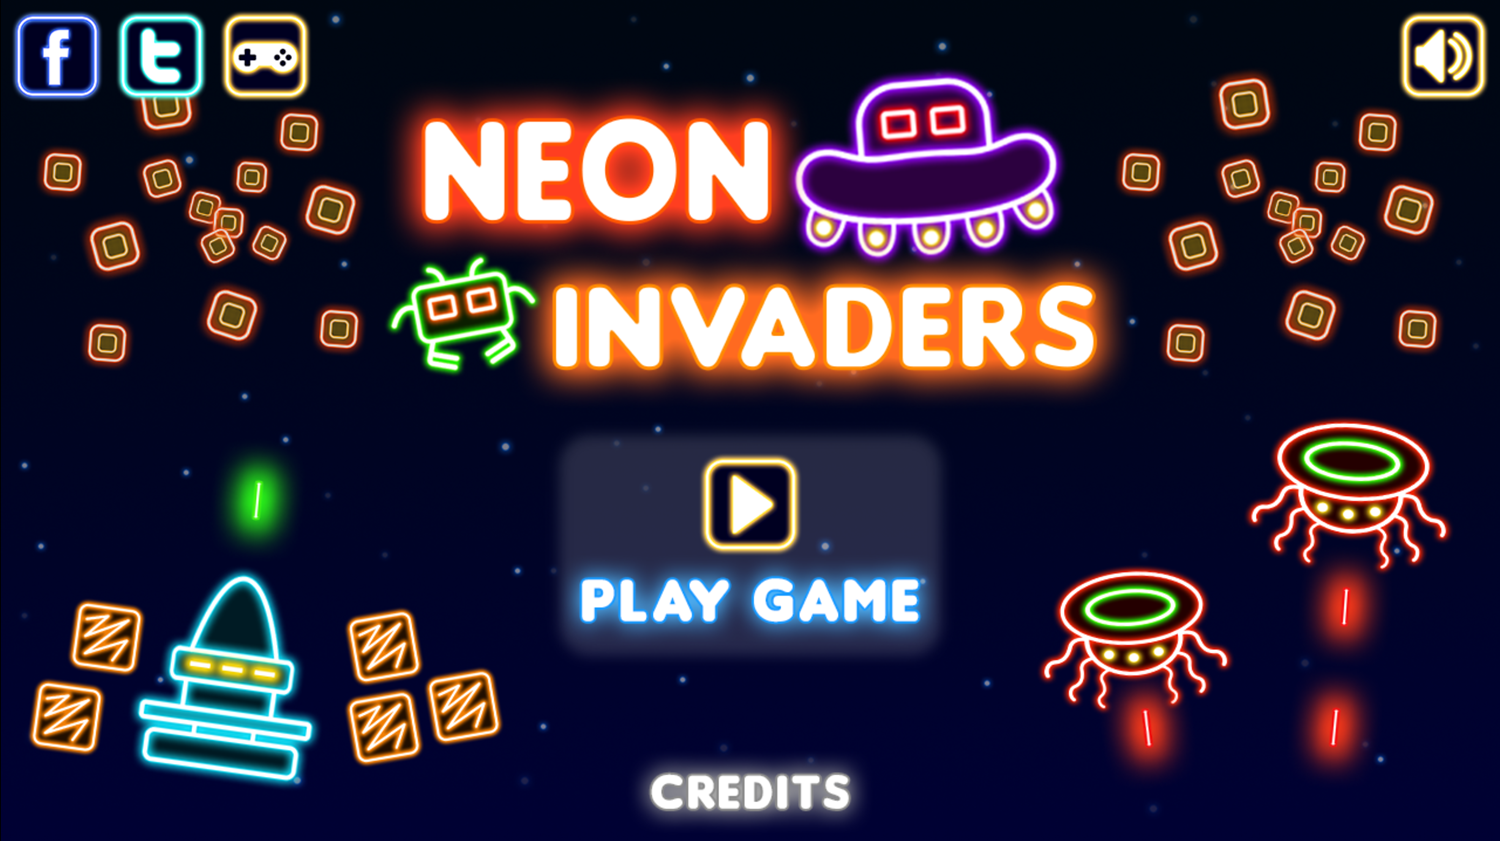 Neon Invaders Game Welcome Screenshot.